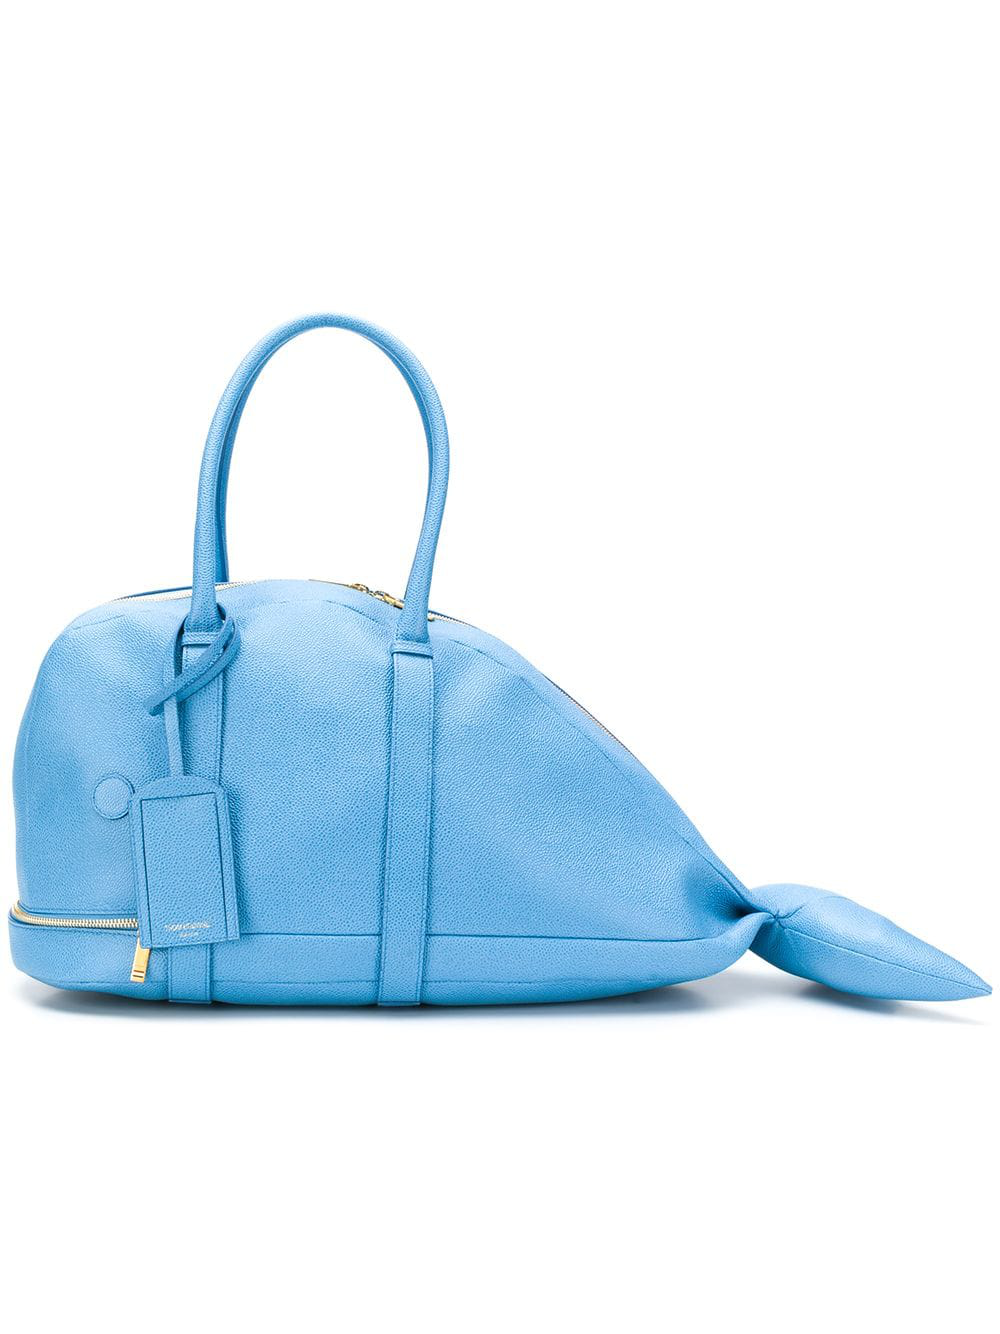 b8c7556de Thom Browne Pebbled Leather Whale Bag - Blue | ModeSens